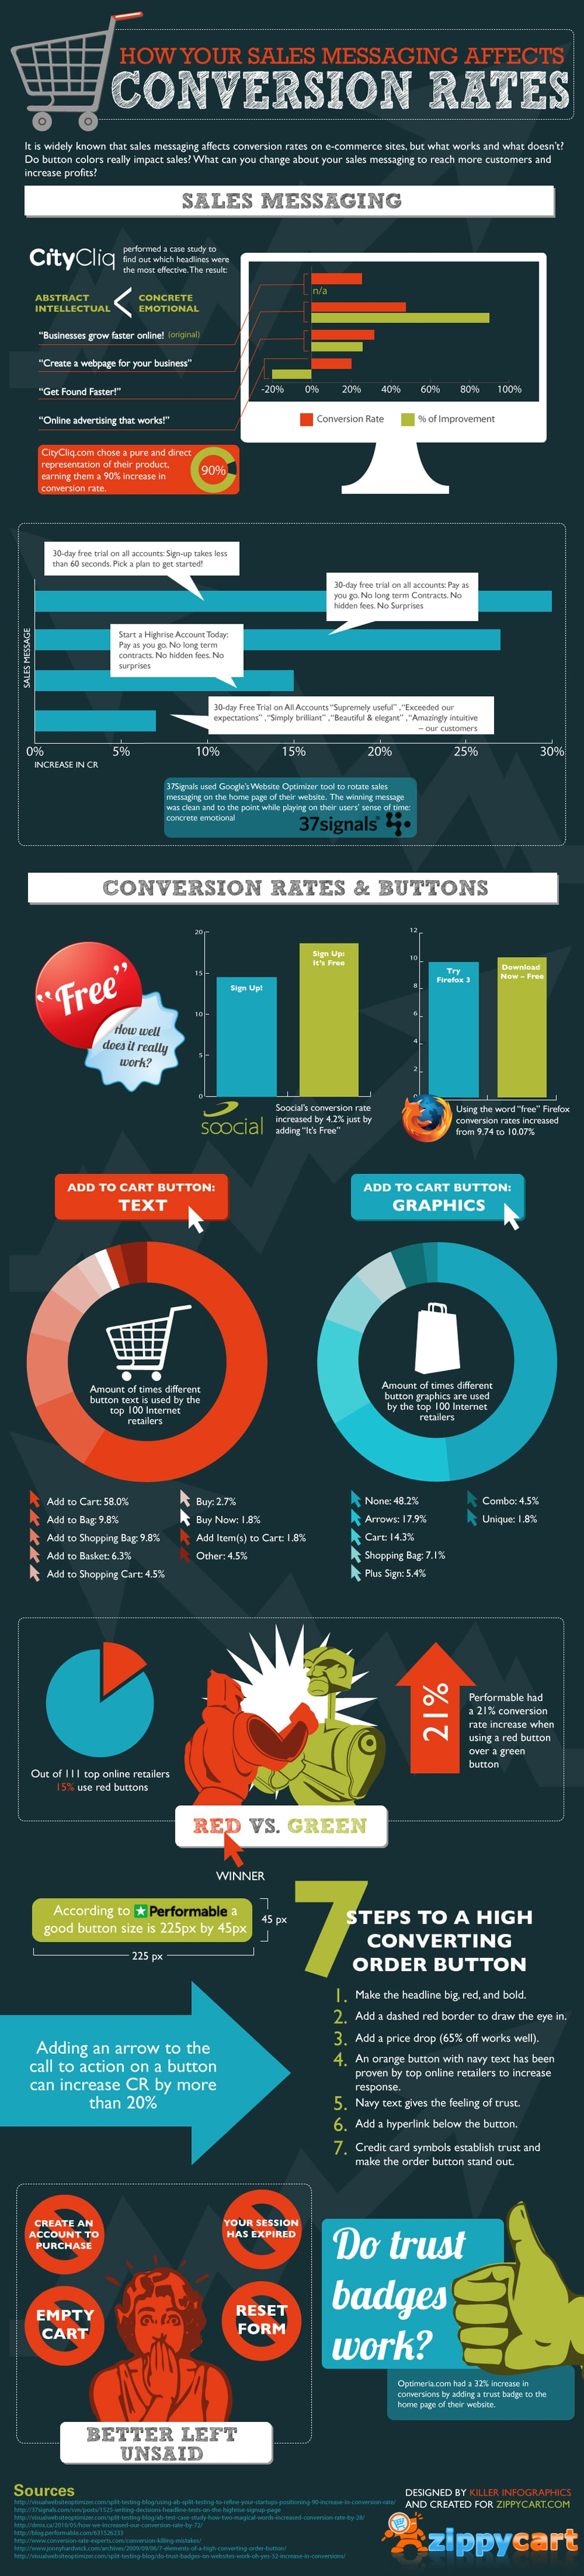 Sales messaging and conversion rates infographic